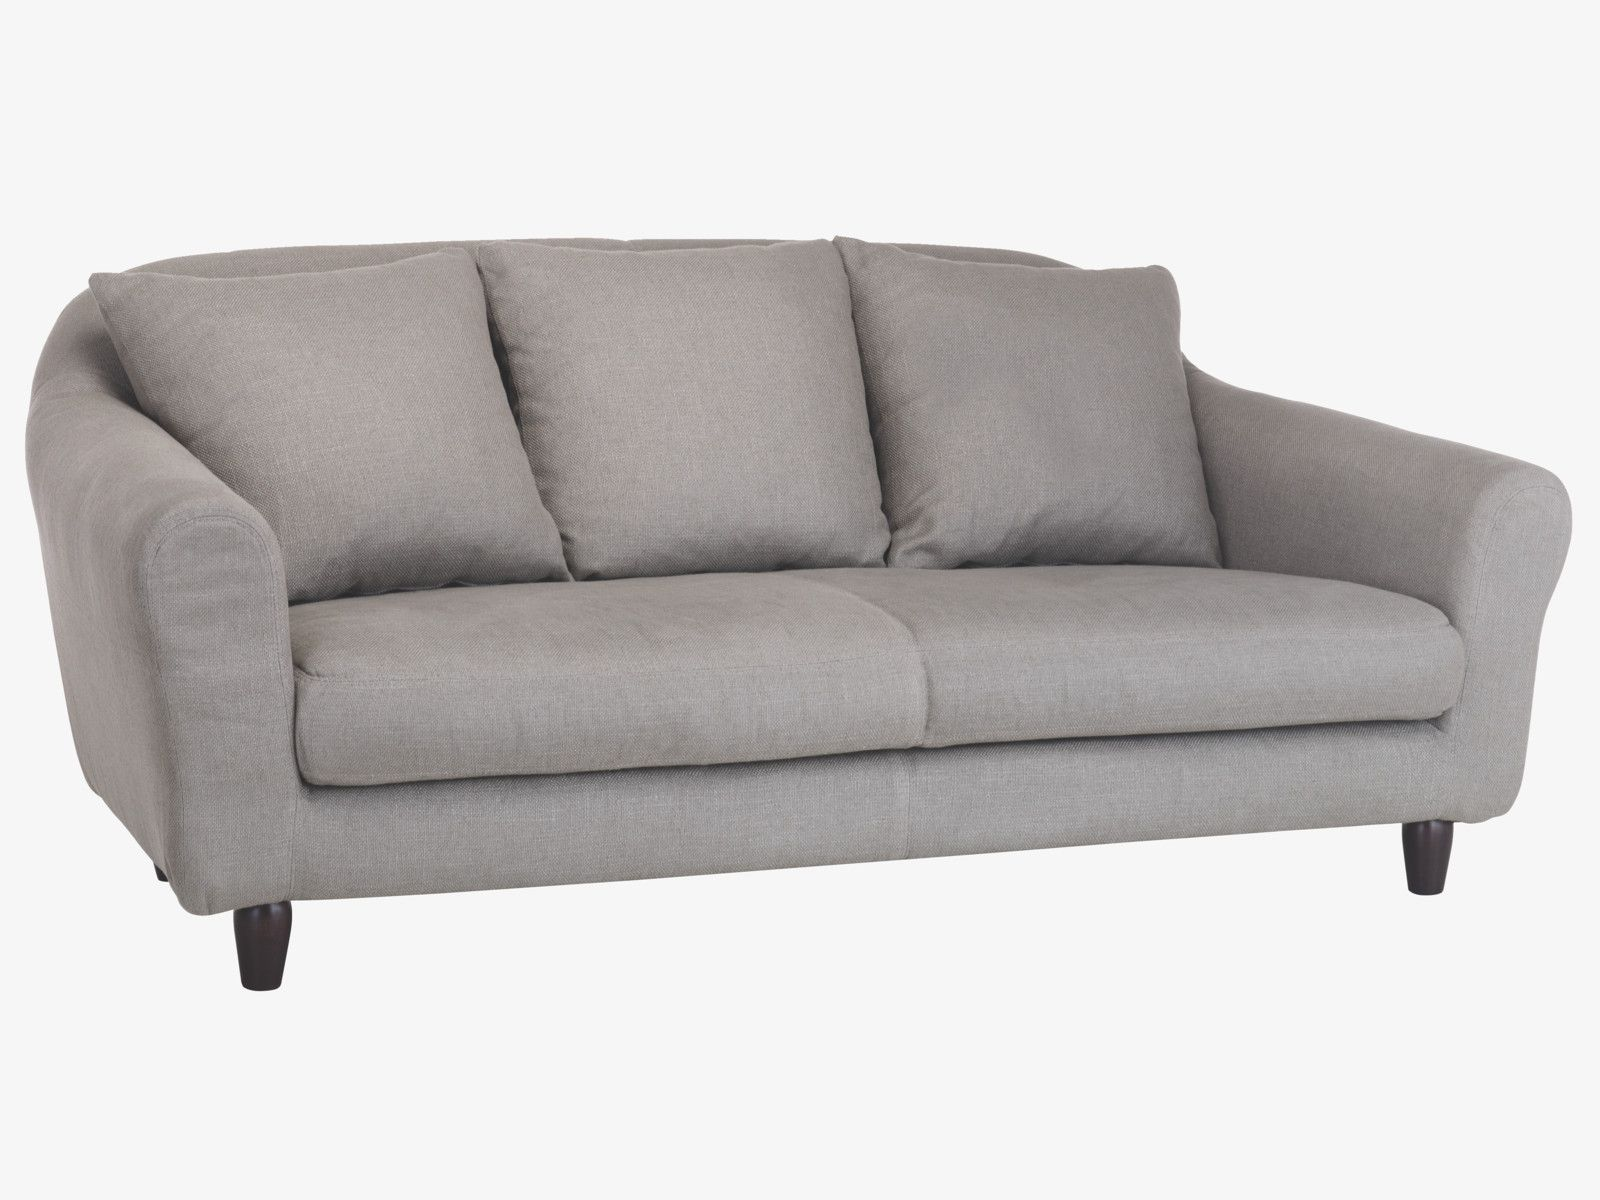 Emlyn Sofa Habitat Sofa Living Room Inspiration Sofa Armchair